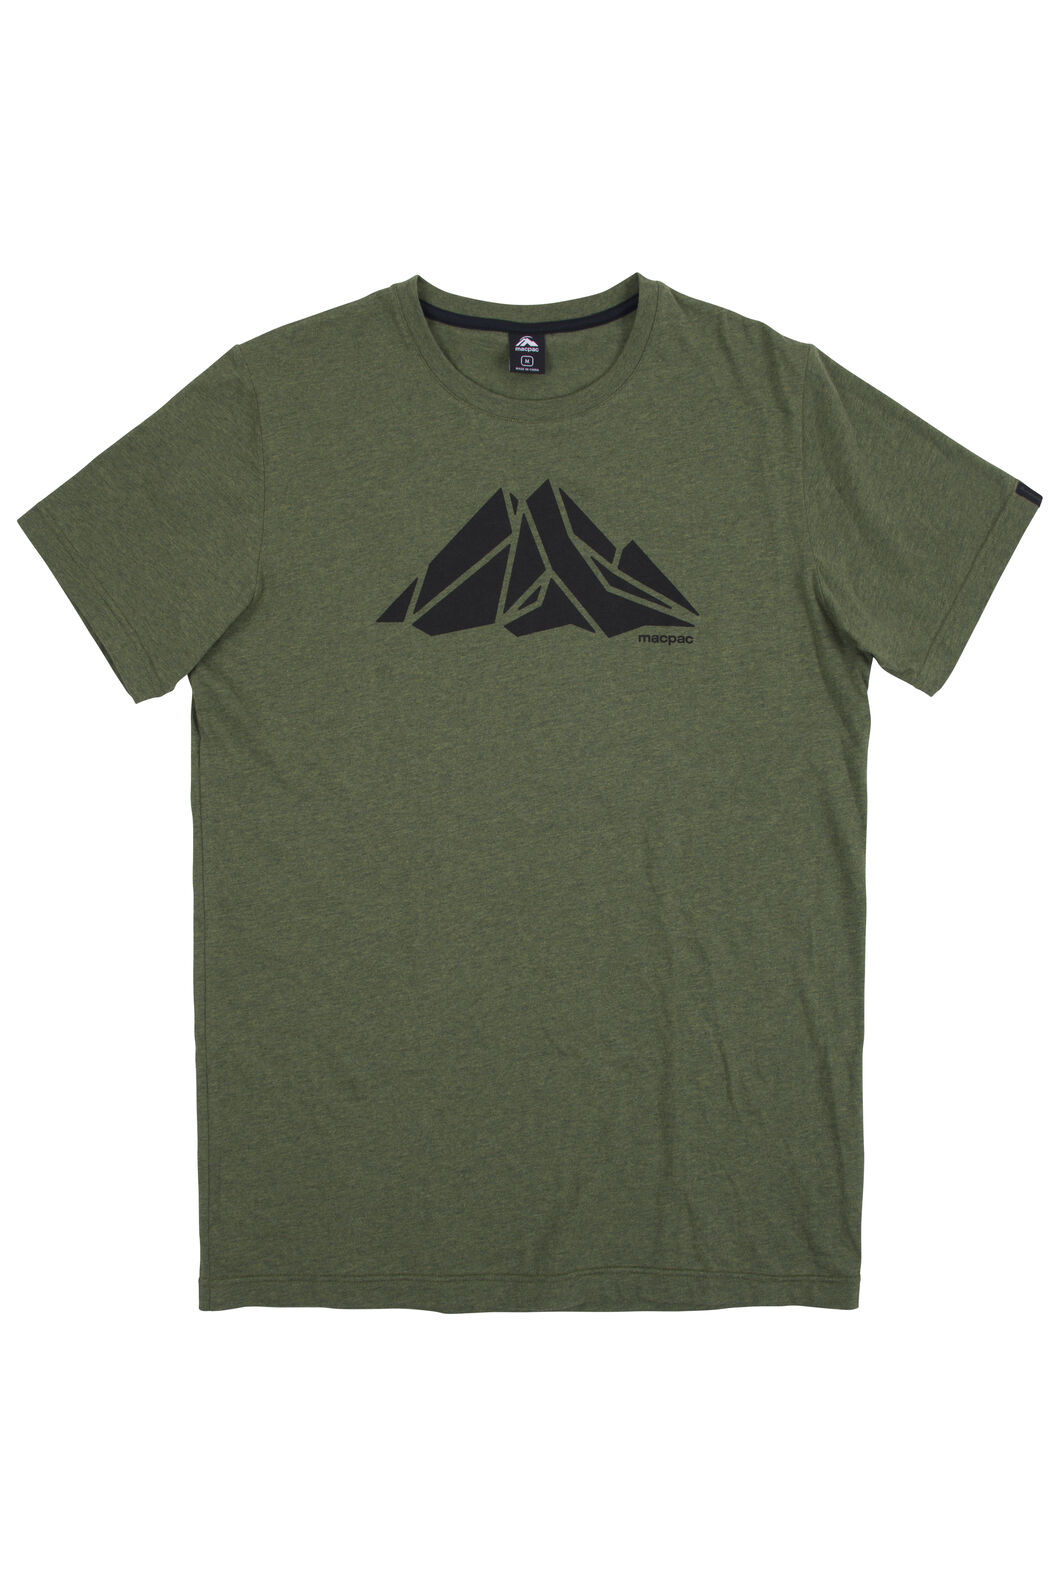 Macpac Screen Print Organic Cotton Tee - Men's, Rifle Melange, hi-res